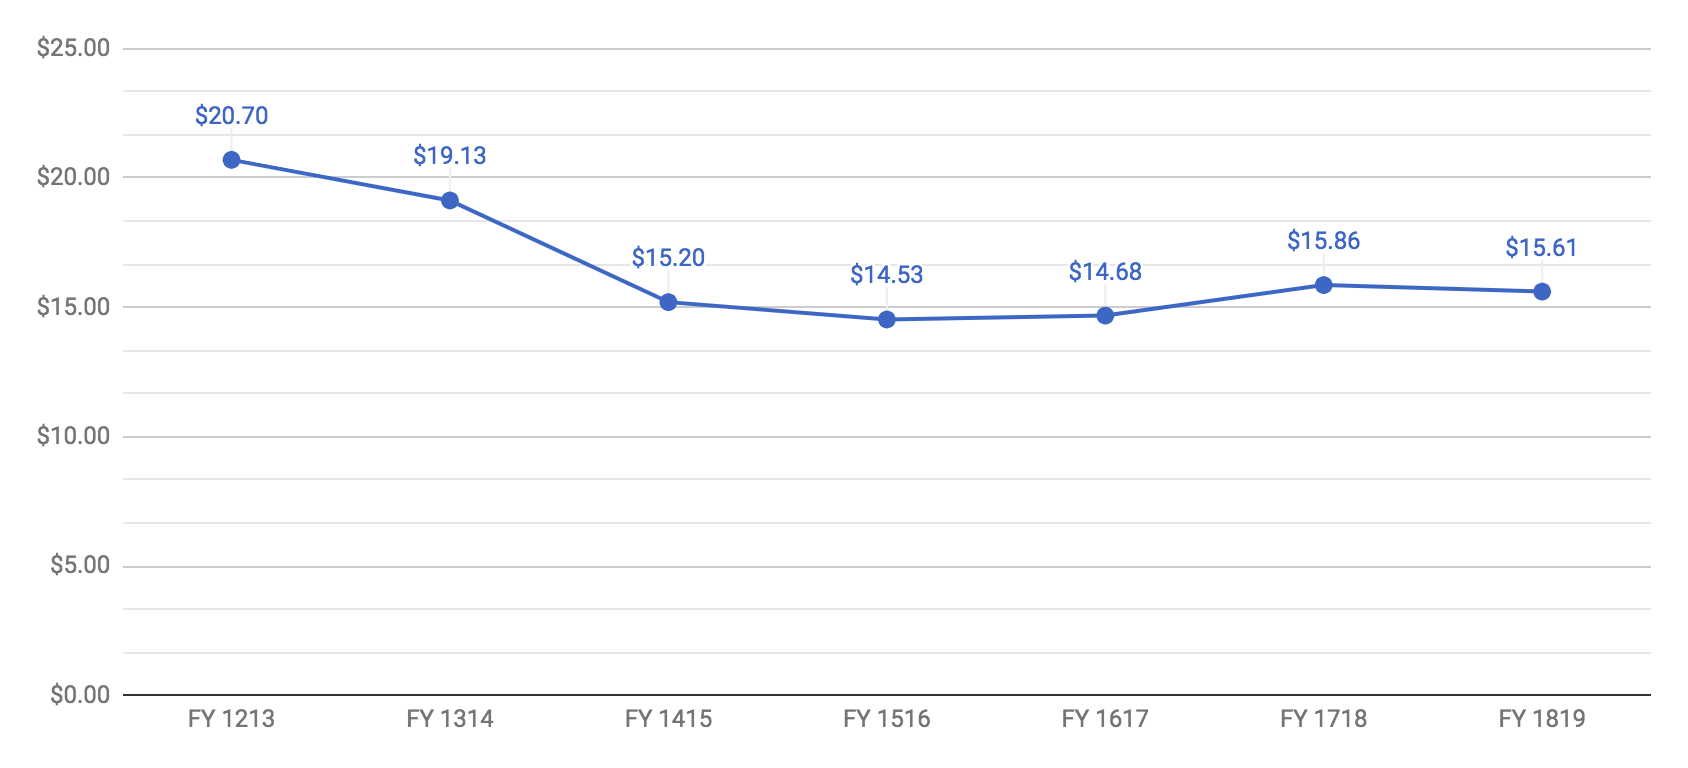 Average donation FY1819 from Fundraising Report